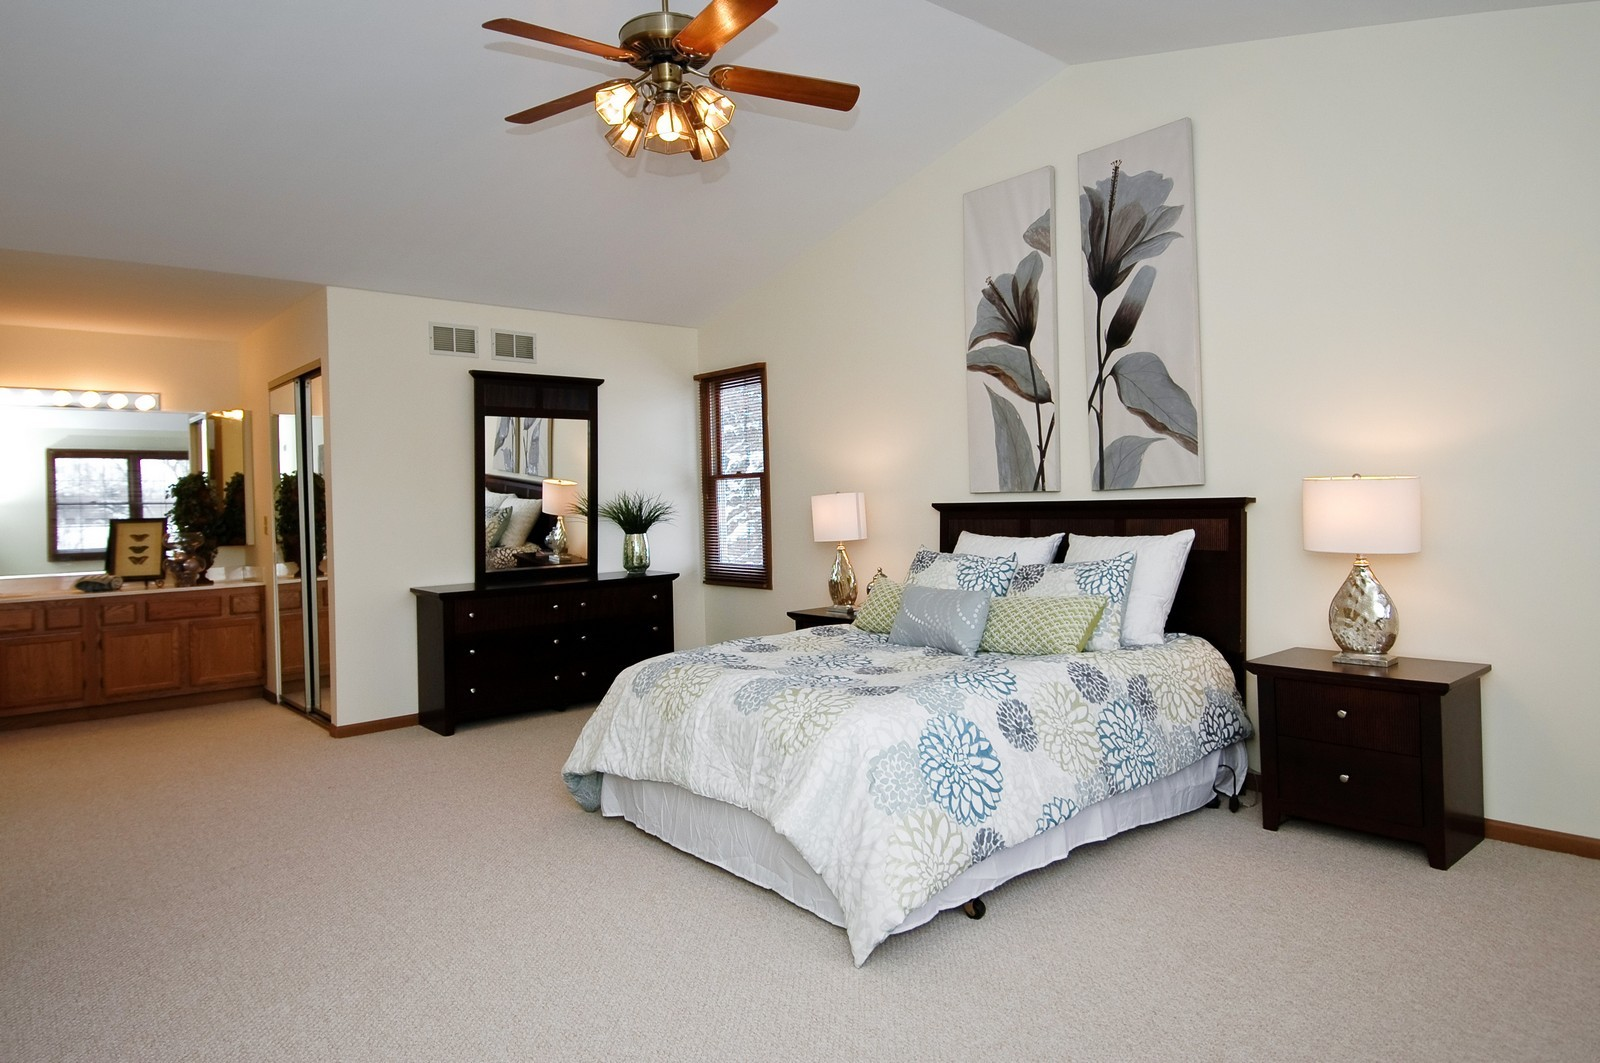 Real Estate Photography - 62 Crystal Ridge Dr, Crystal Lake, IL, 60012 - Master Bedroom